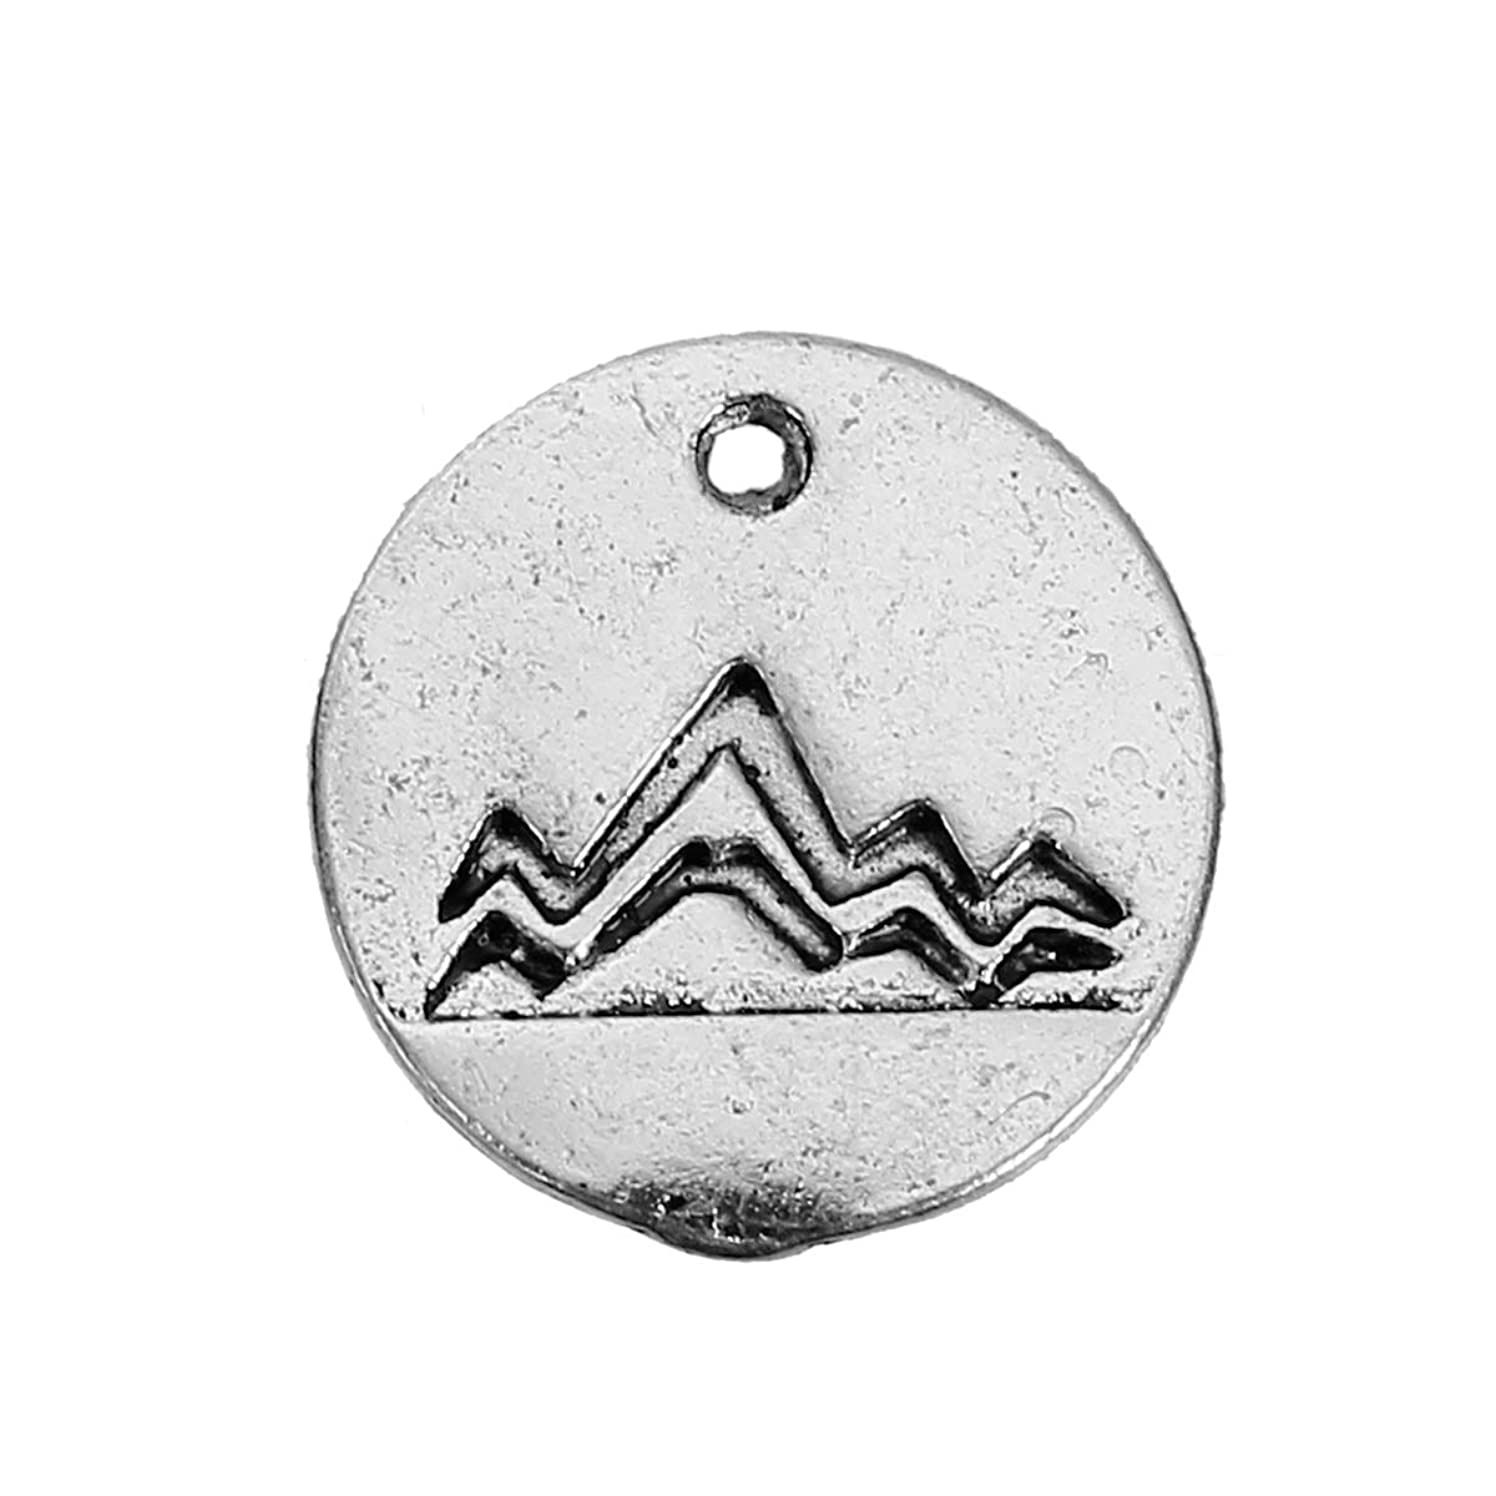 PEPPERLONELY 20pc Antiqued Silver Alloy Travel Mountain Carved Round Charms Pendants 13mm (1/2